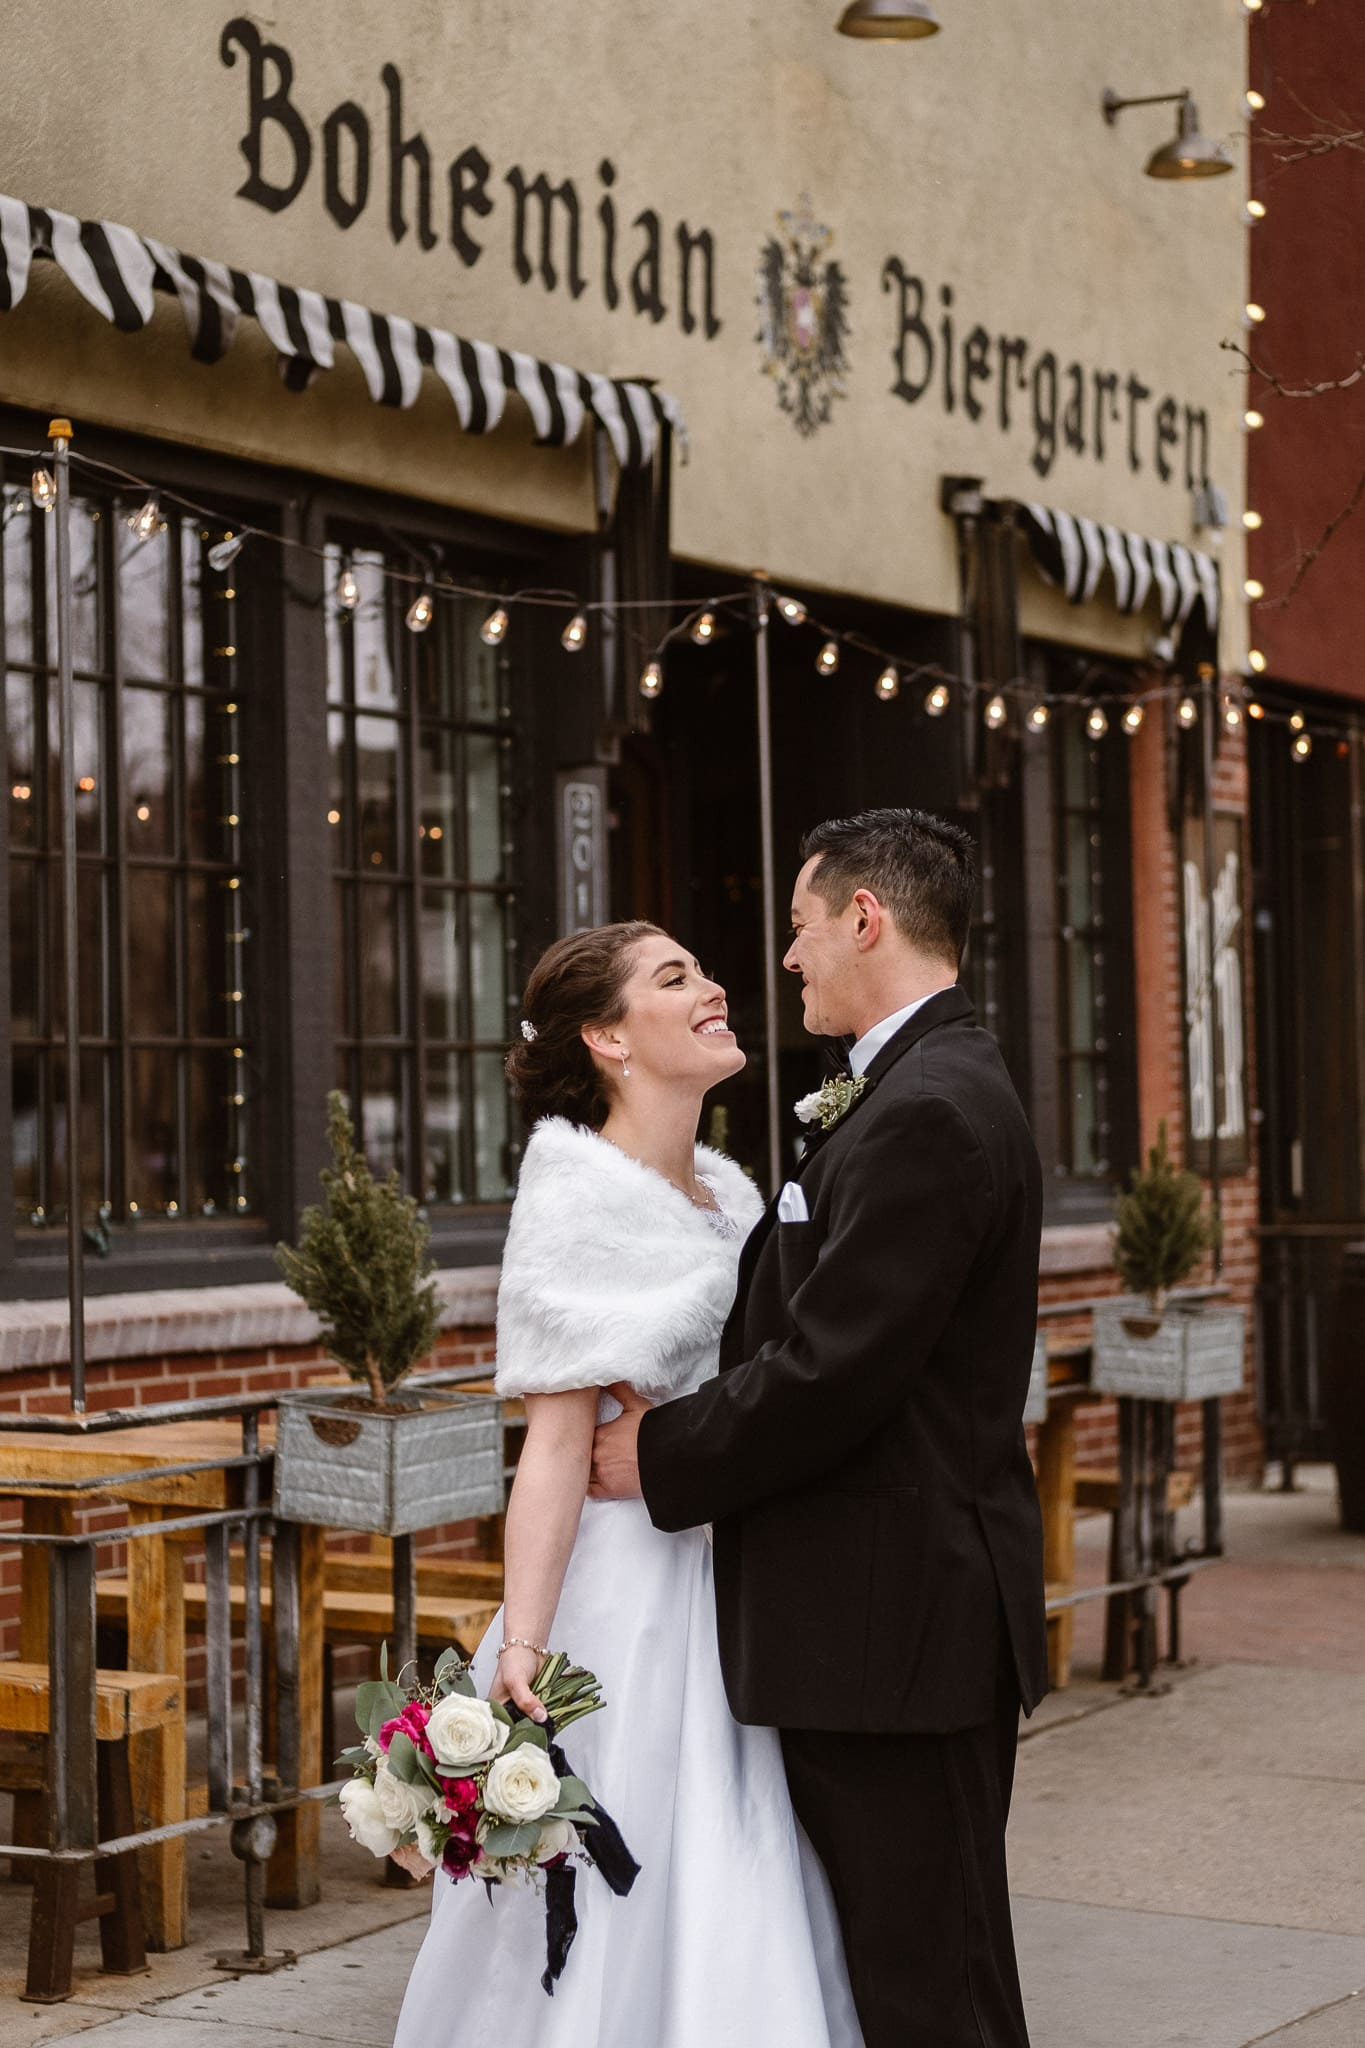 Rembrandt Yard wedding photographer, Boulder wedding photographer, Colorado Jewish wedding, bride and groom portraits in downtown Boulder